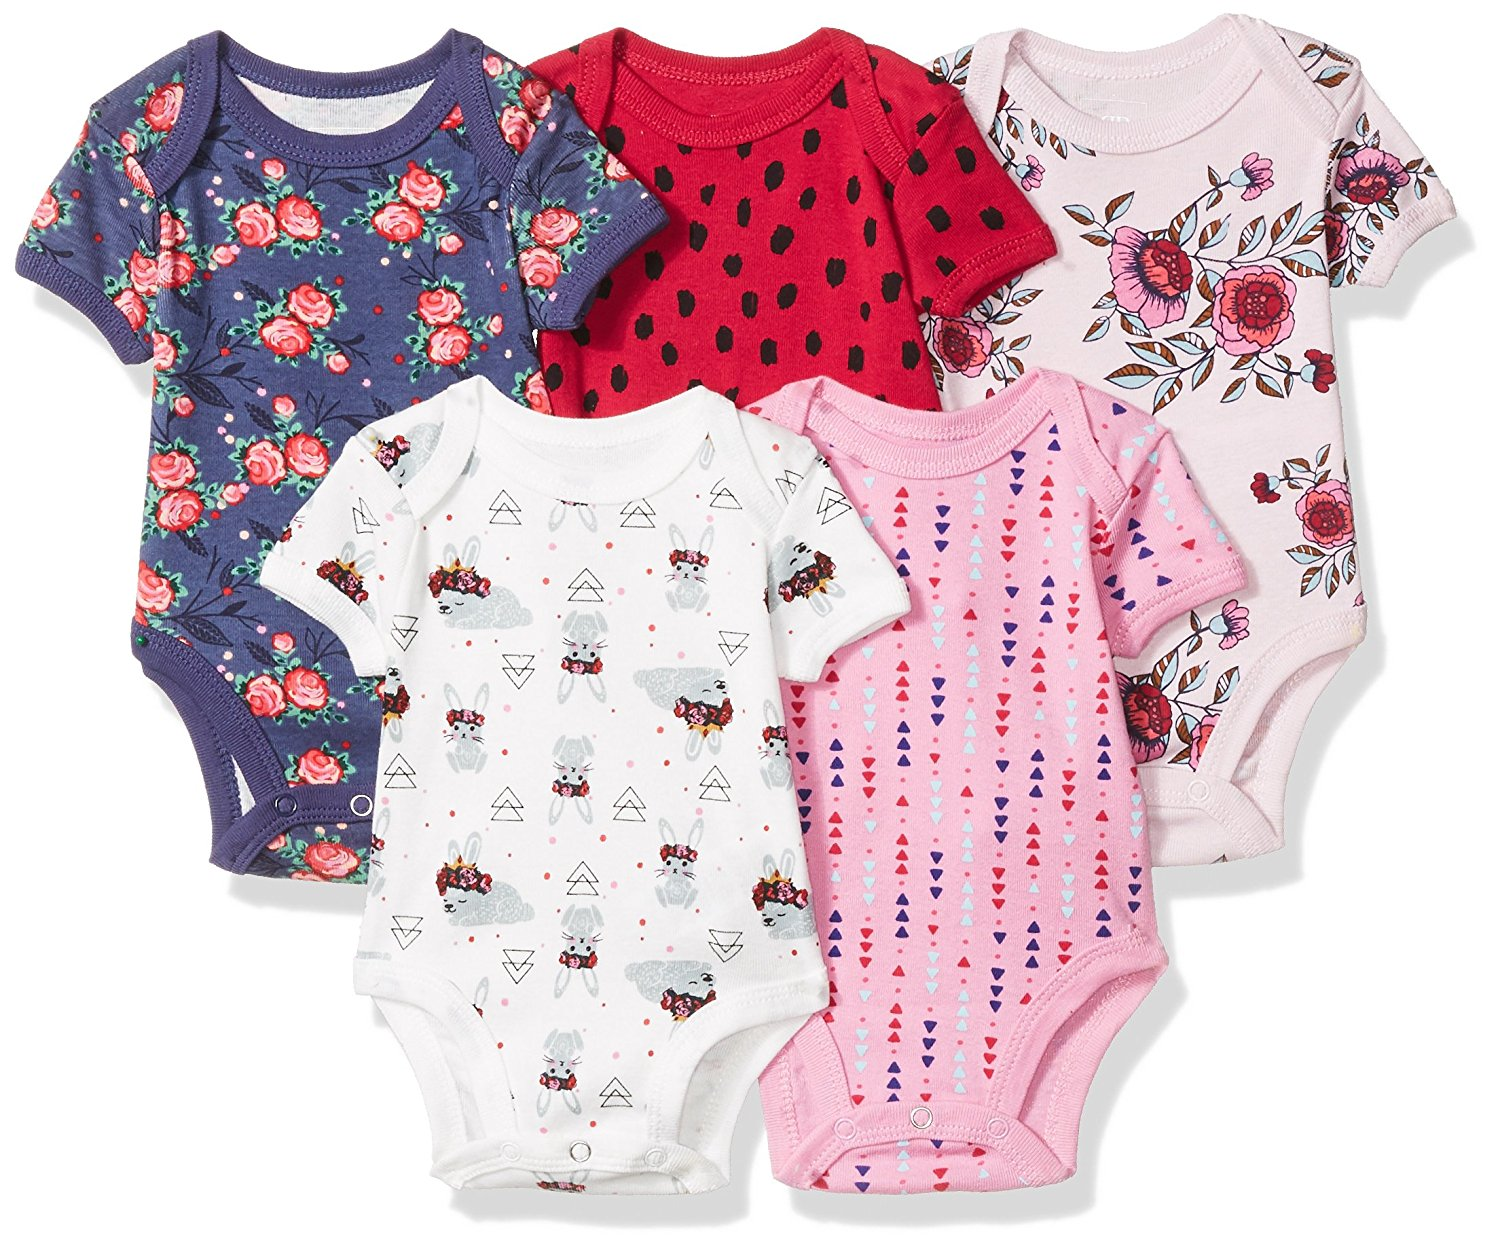 Rosie Pope Baby 5 Pack Bodysuits More colors Available!